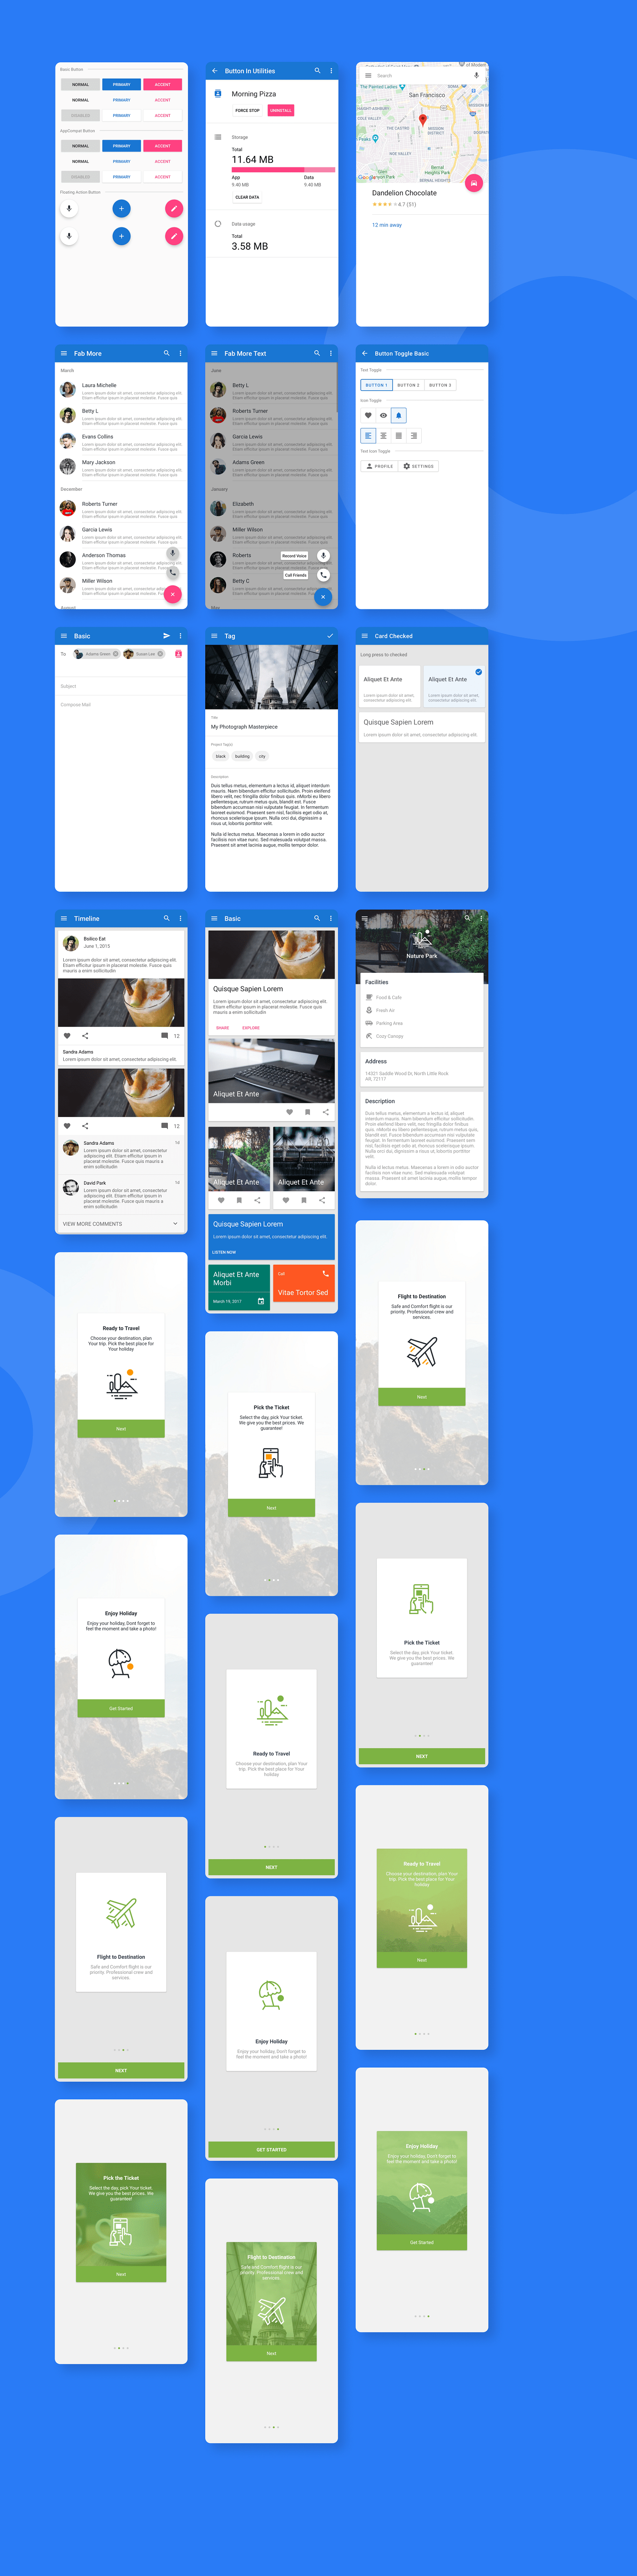 MaterialX - Android Material Design UI Components 2.7 - 12